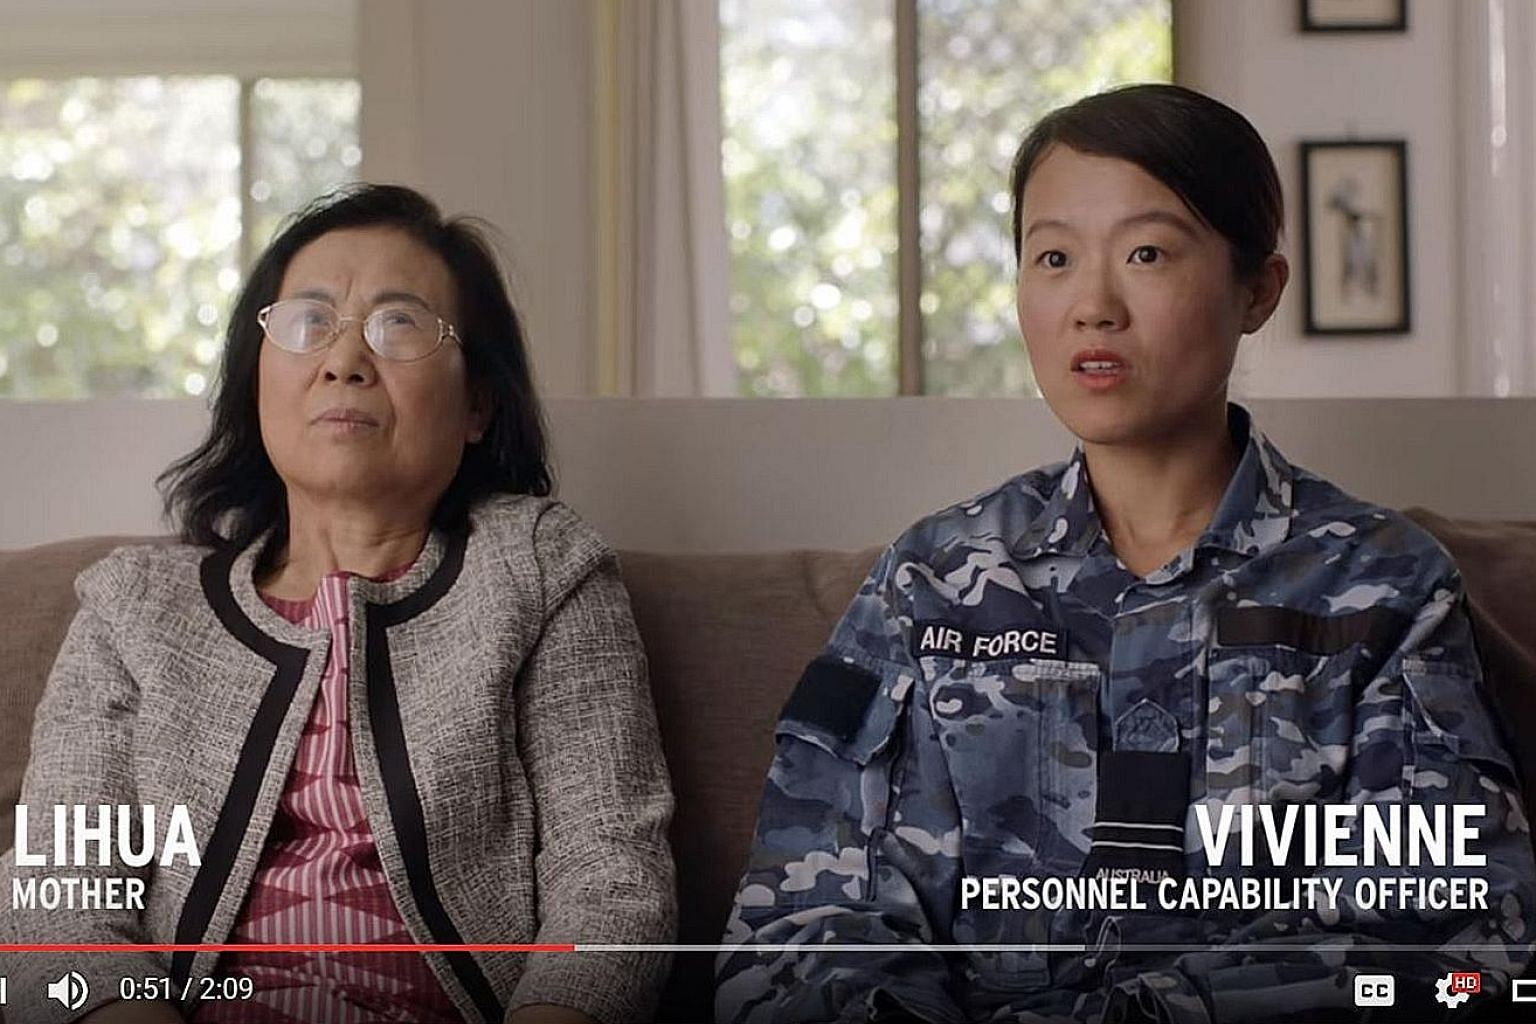 The latest series of recruitment advertisements features military personnel at home with their parents, in an effort to enhance perceptions of the military as a career choice. In this ad, personnel capability officer Vivienne talks about her positive